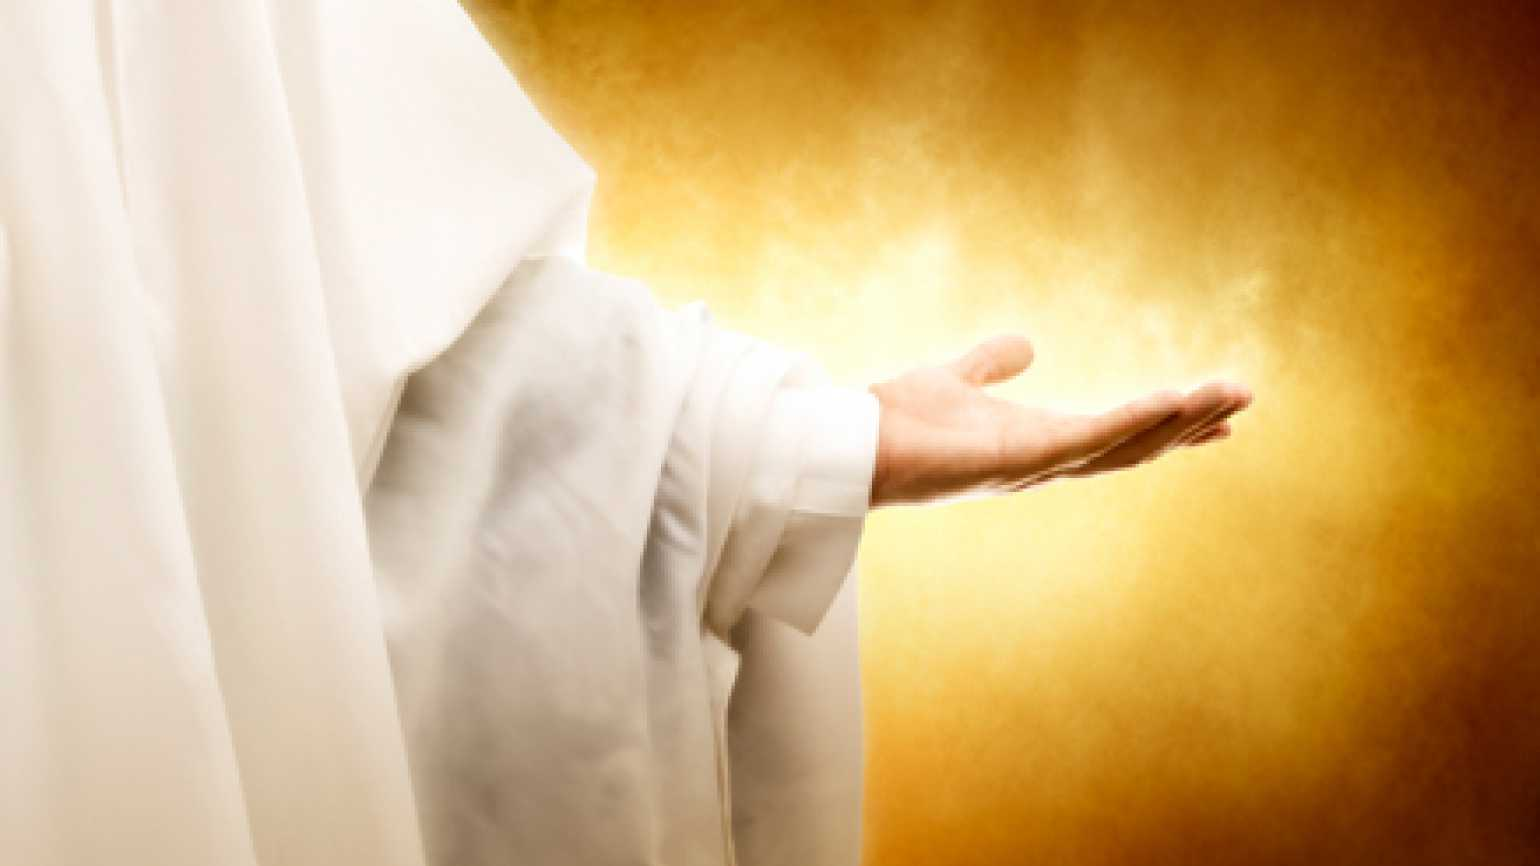 Jesus Christ's outstretched healing hand.